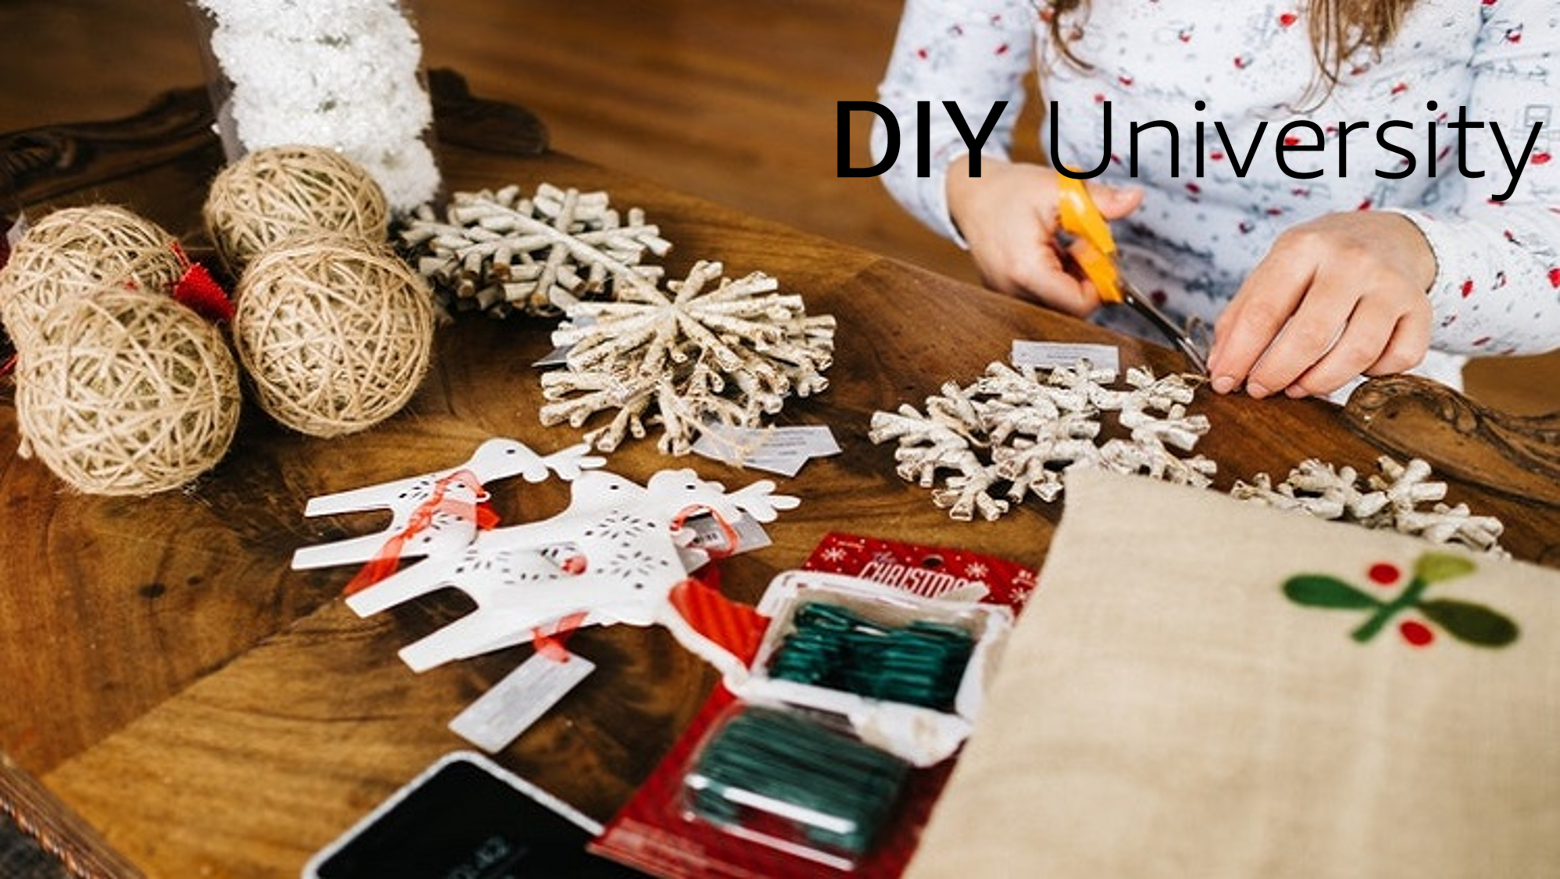 Quick and easy crafts with glue guns